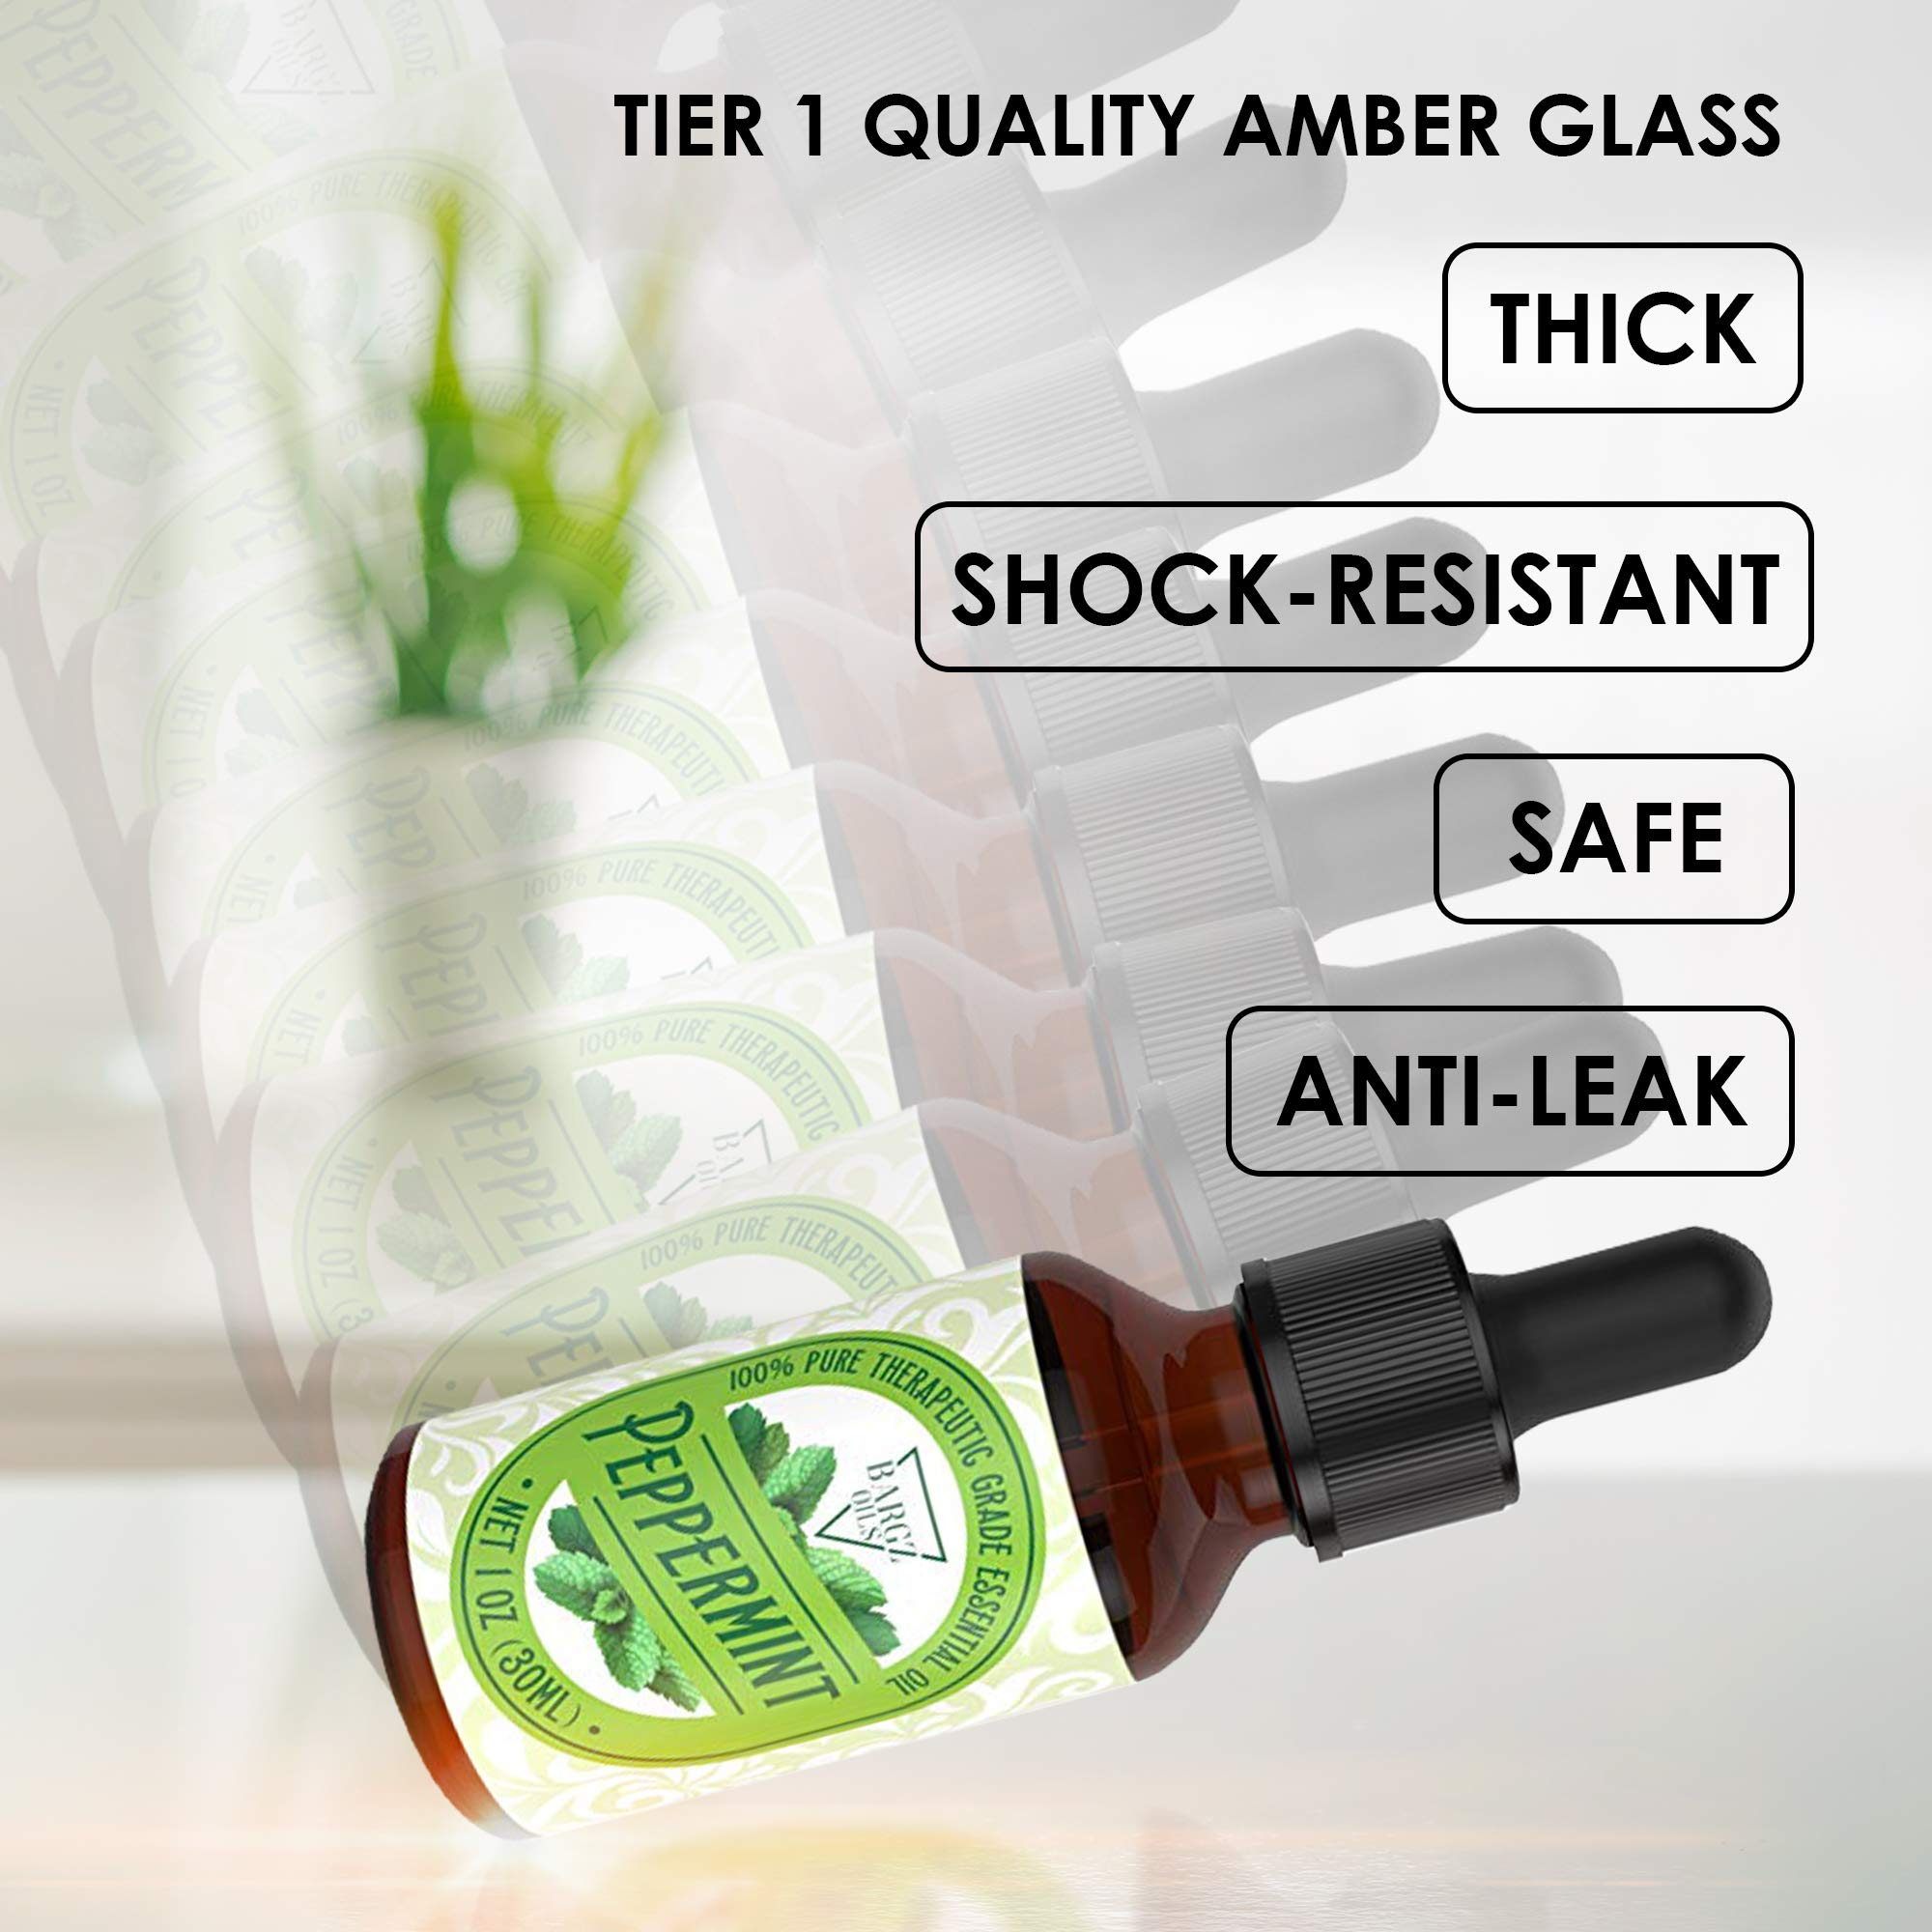 1oz Peppermint Essential Oil [RELAXING SCENT] - Glass Amber Bottle with DropperOrganic Pure Therapeutic French for Diffuser, Aromatherapy, Headache, Pain, Sleep-Perfect For Candles & Massage